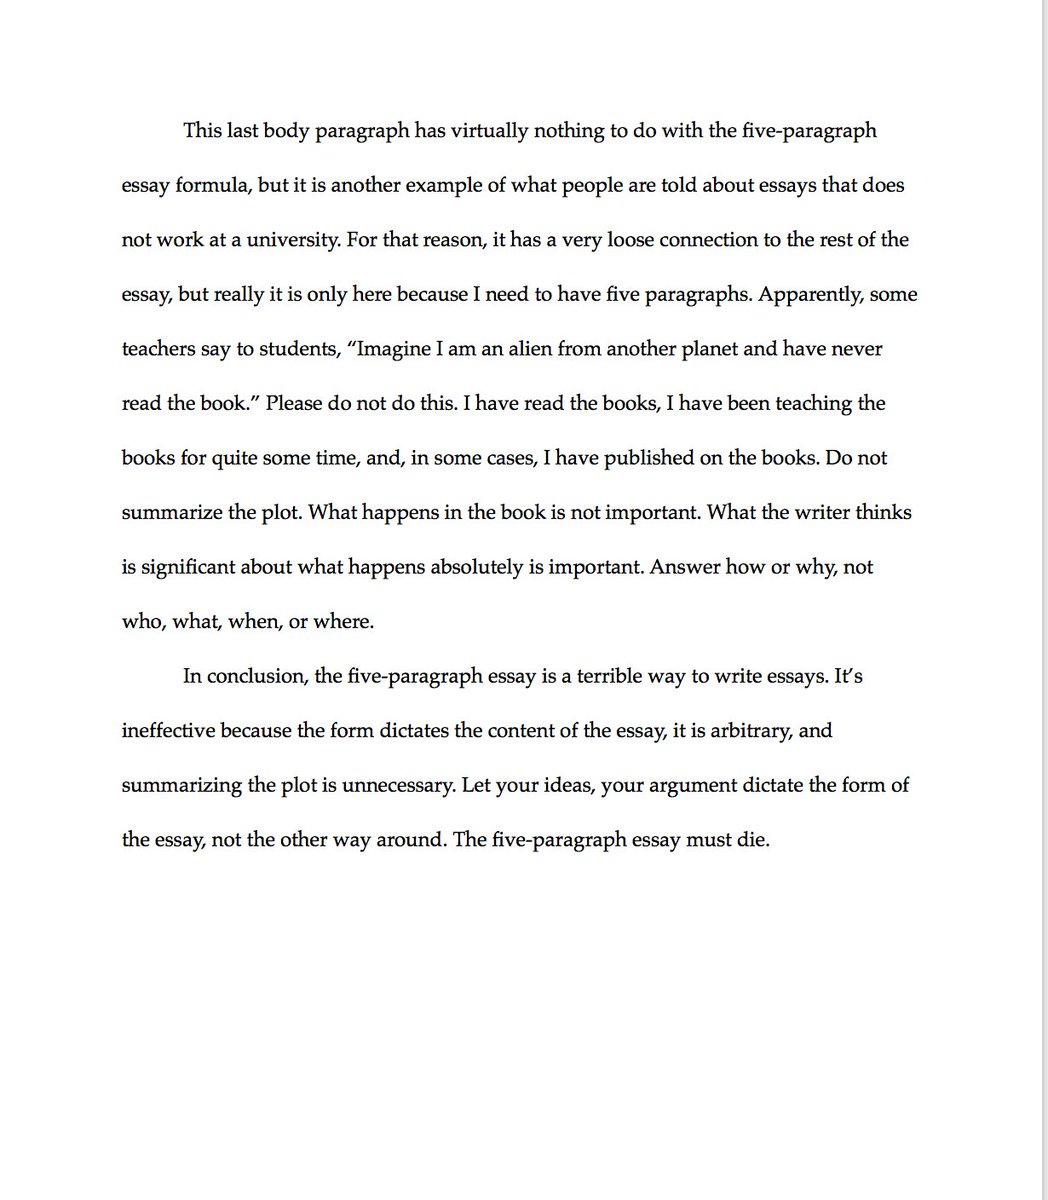 006 Paragraph Essay Example Exceptional 3 Elementary Outline Full